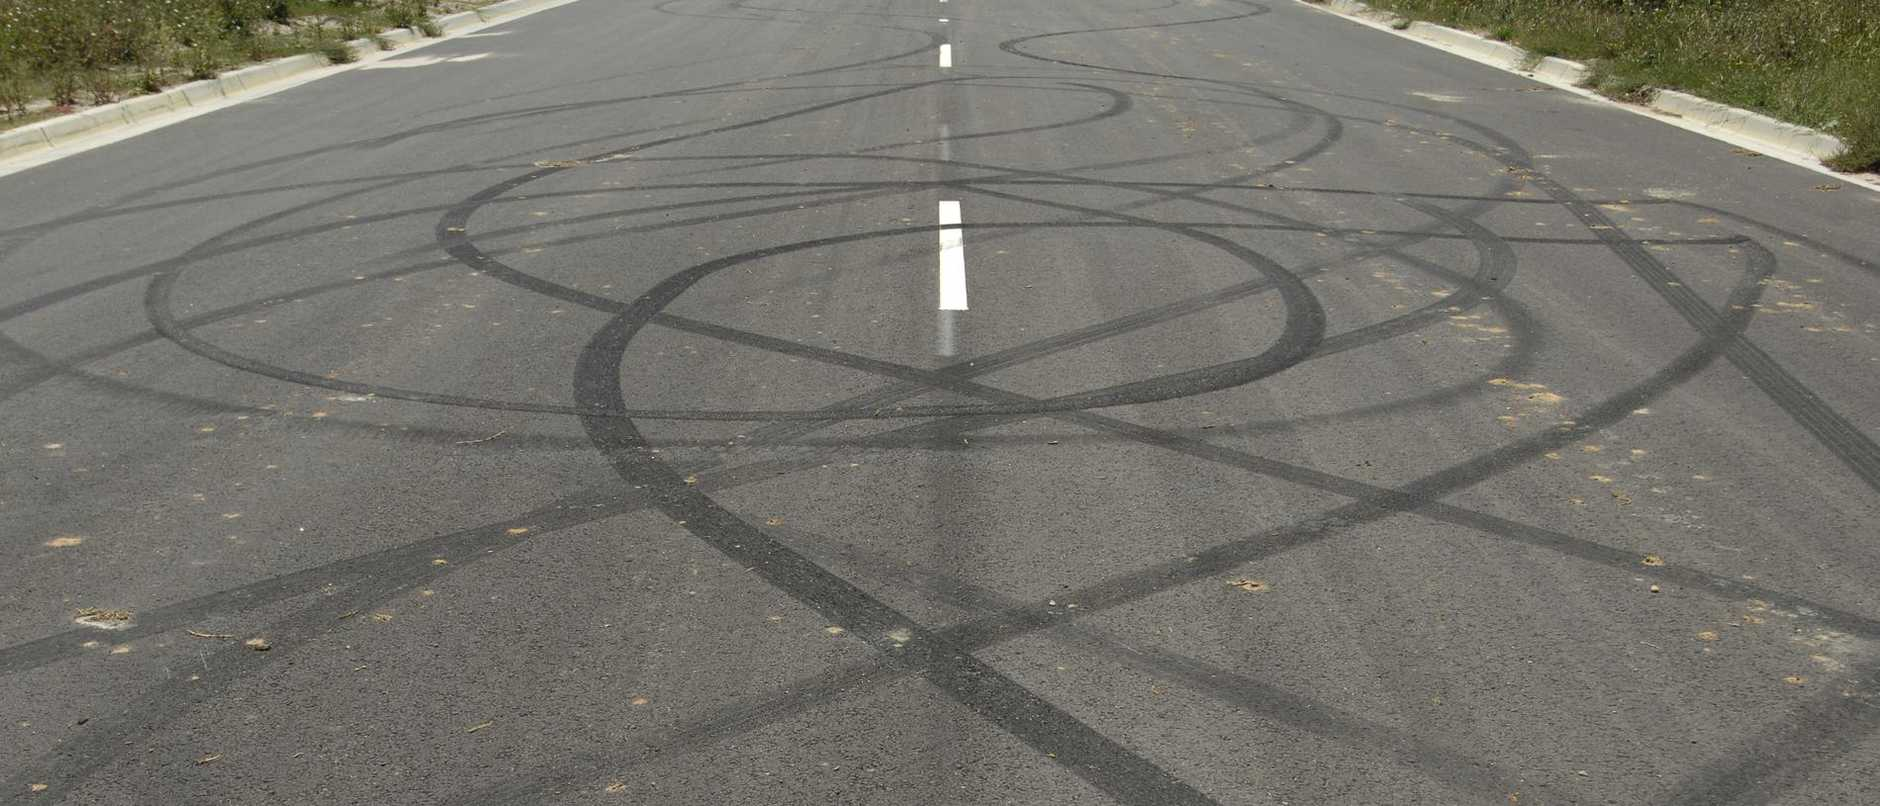 Generic images skid marks / burnouts / wheel spins / tyre marks / hoons